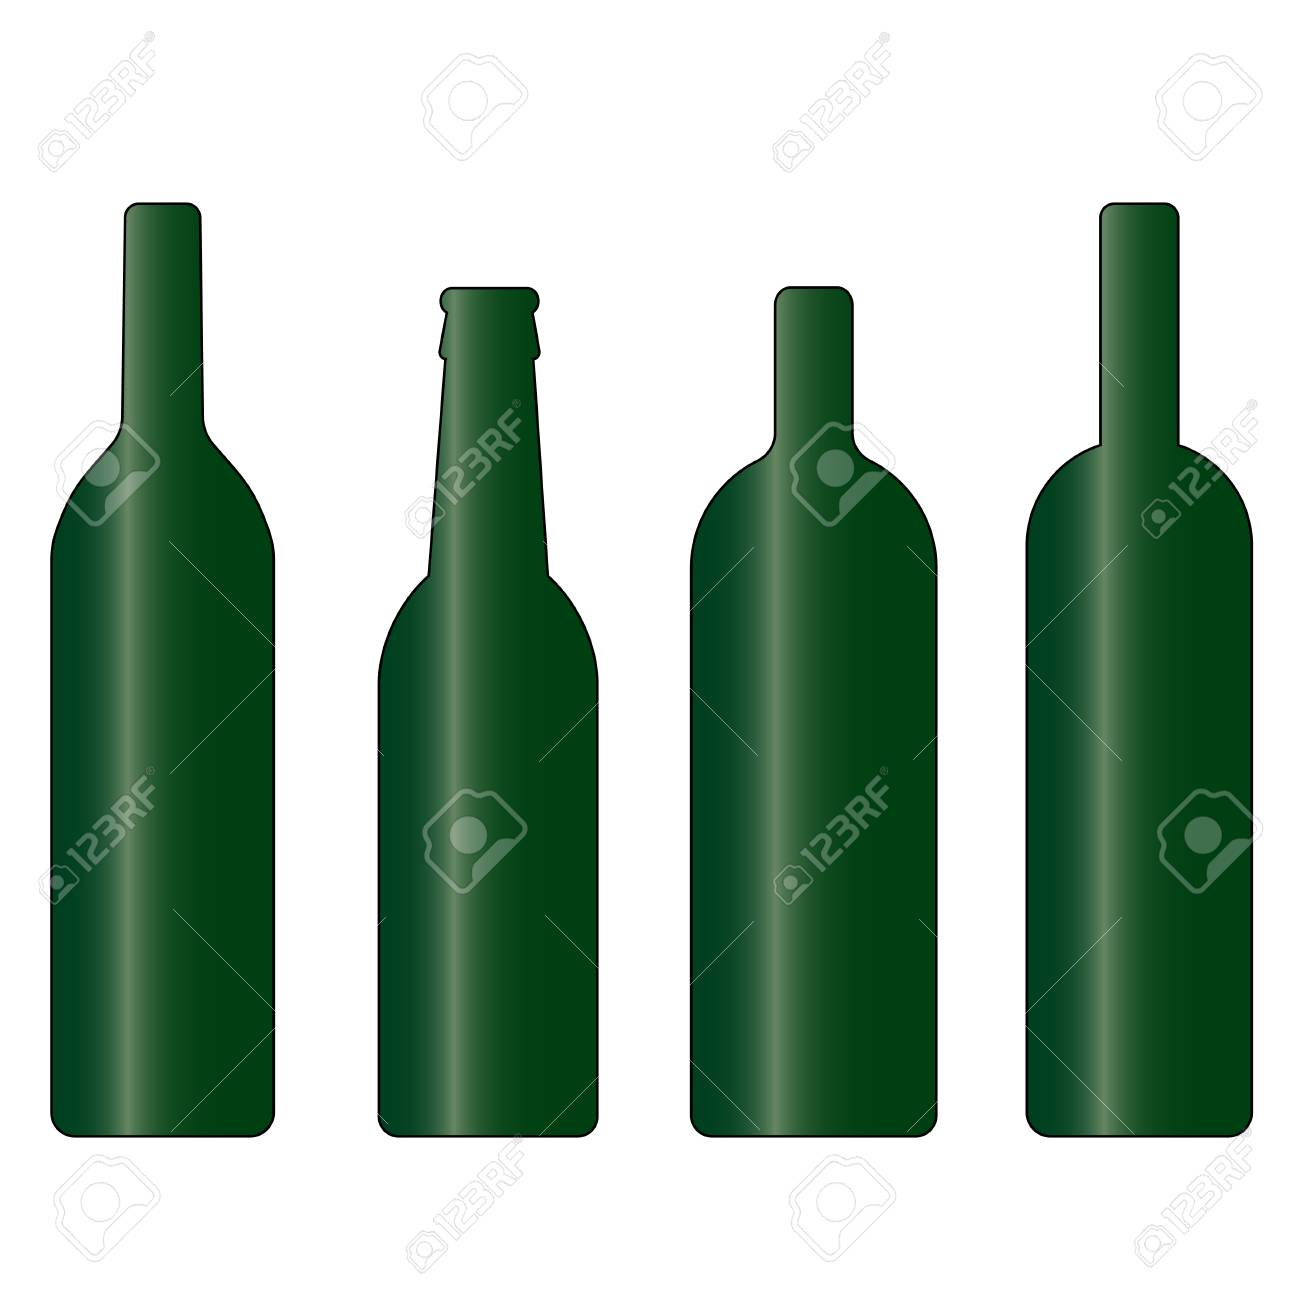 set of green wine and beer bottle vector background wallpaper rh 123rf com wine bottle vector png wine bottle vector image